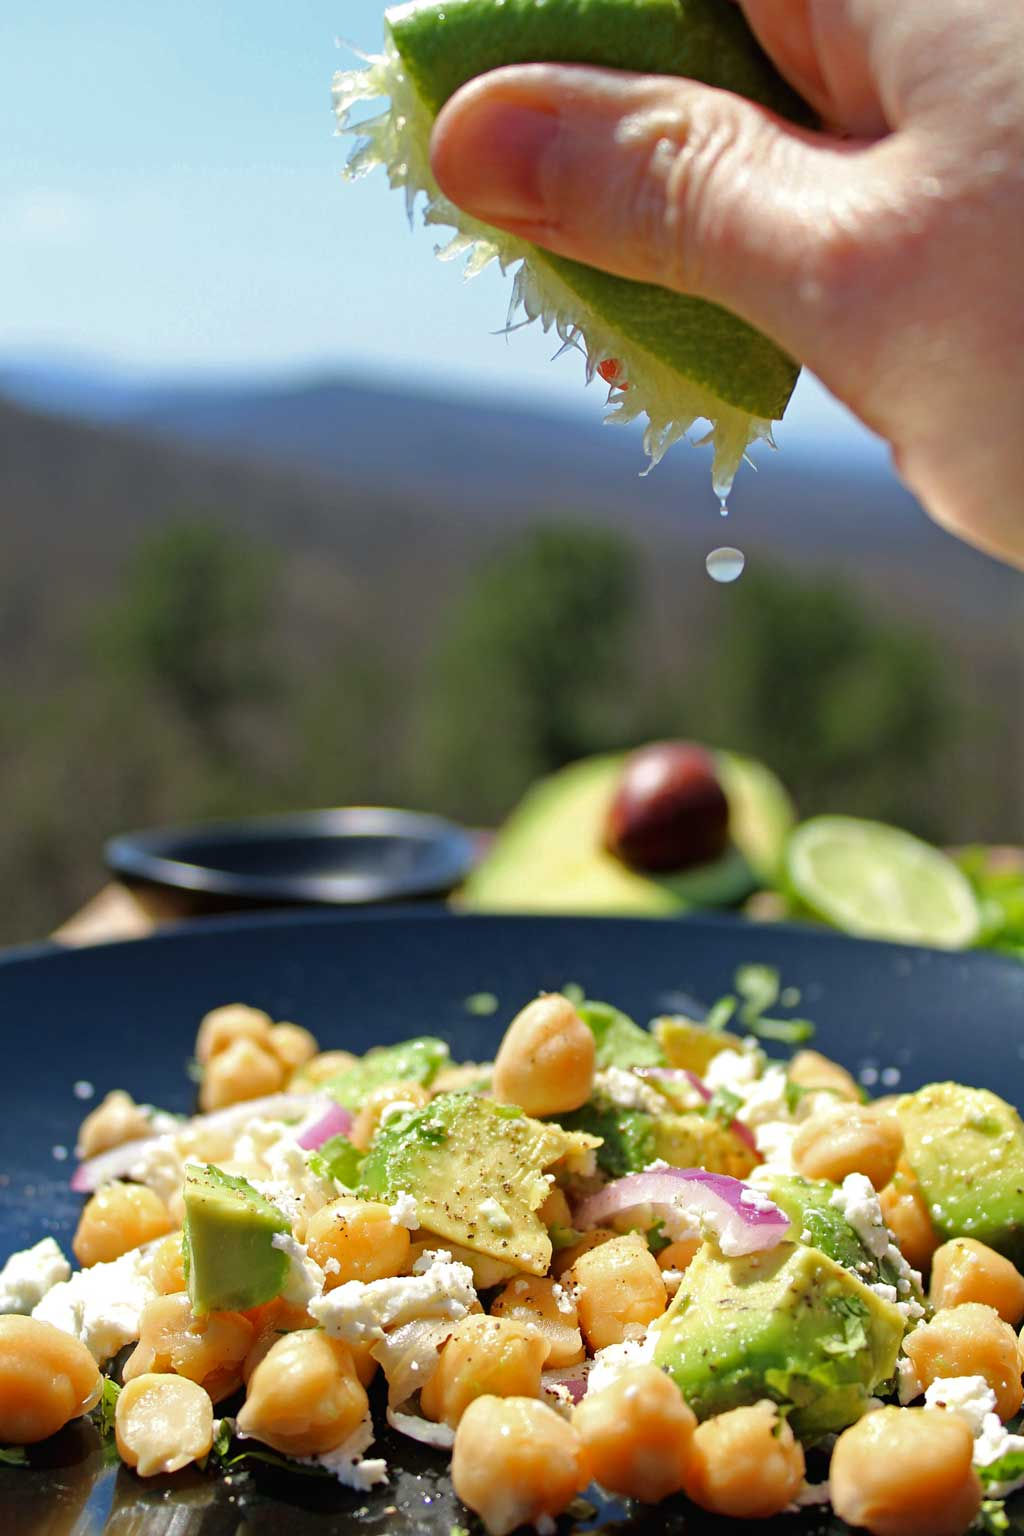 It only takes 5-minutes to make this delicious high protein, high fiber chickpea avocado salad. A vegetarian salad for a super healthy Meatless Monday meal!